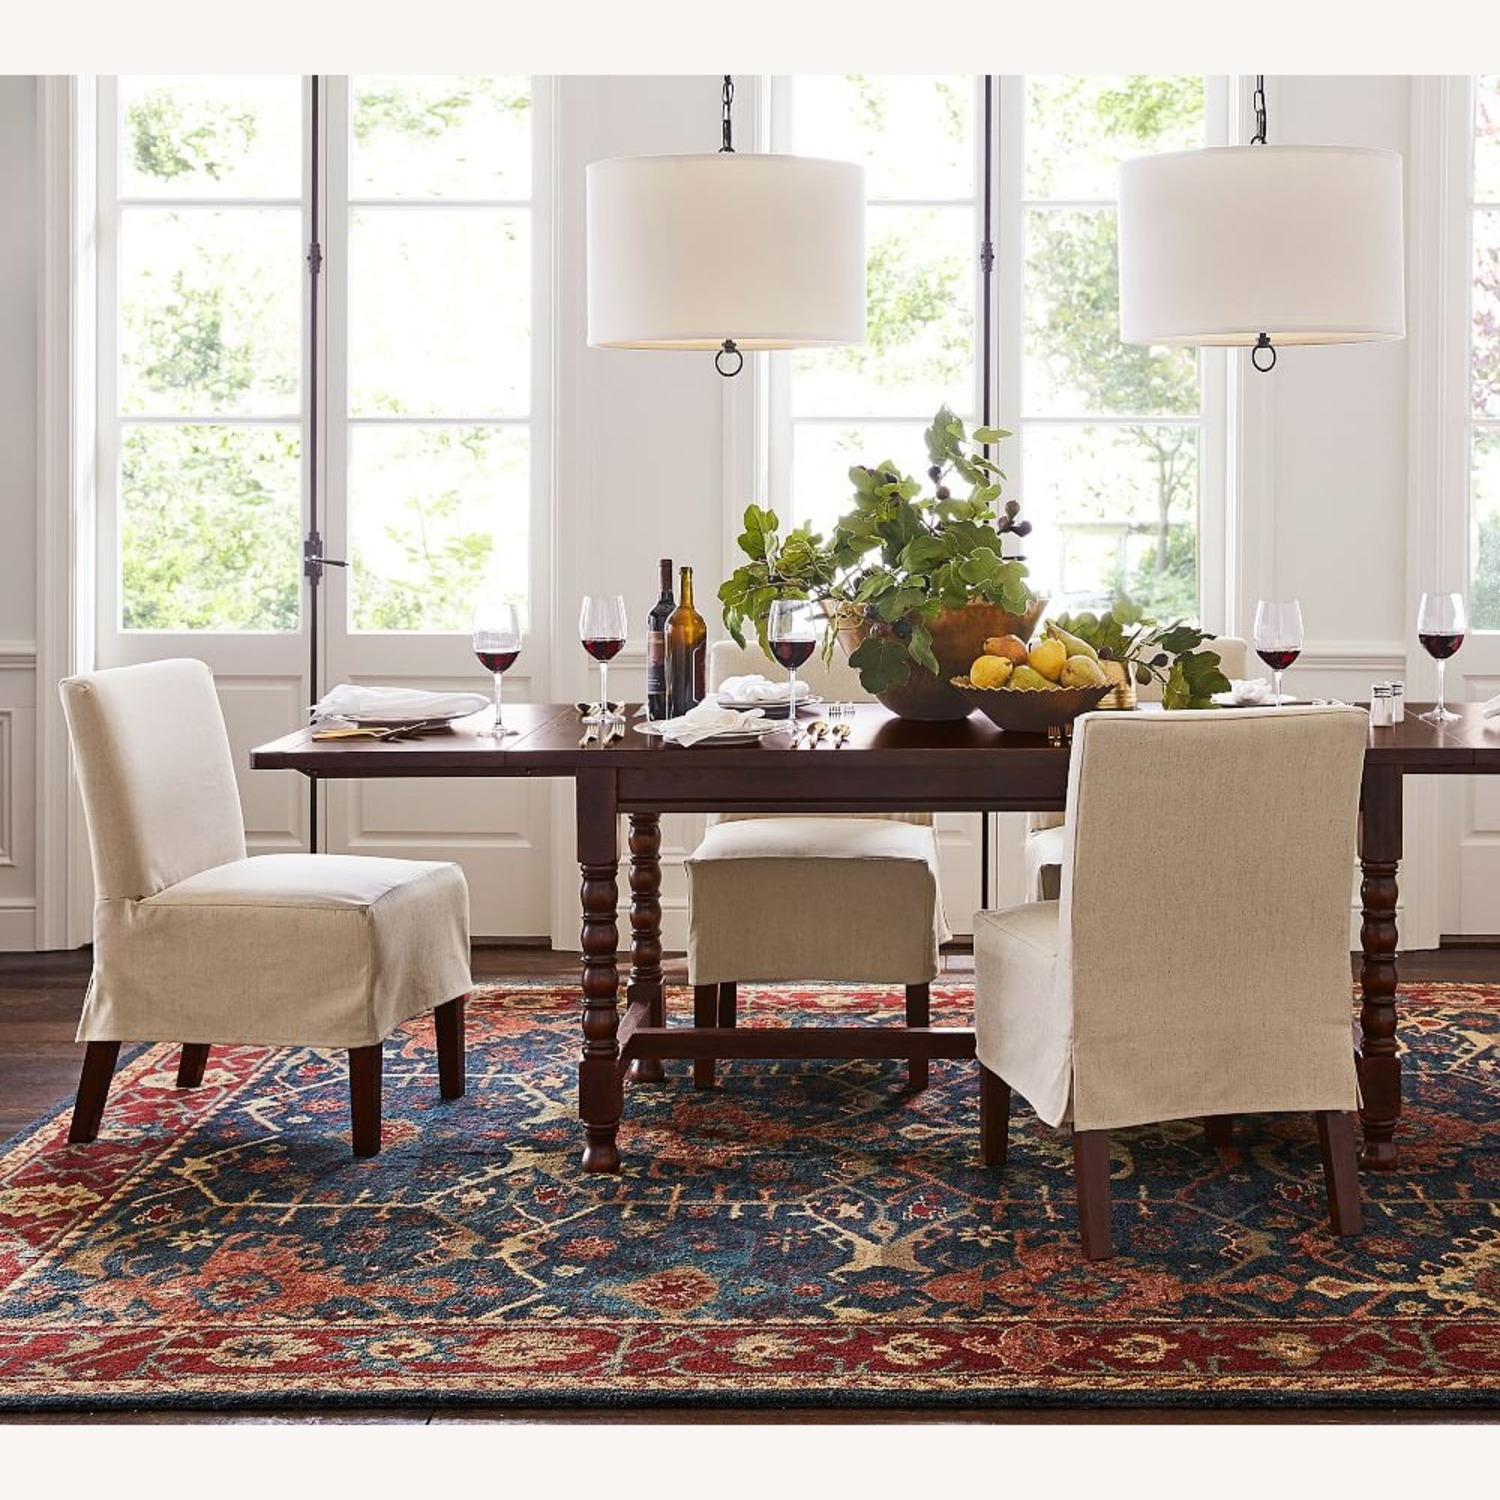 Pottery Barn Channing Persian-Style Hand Rug - image-2